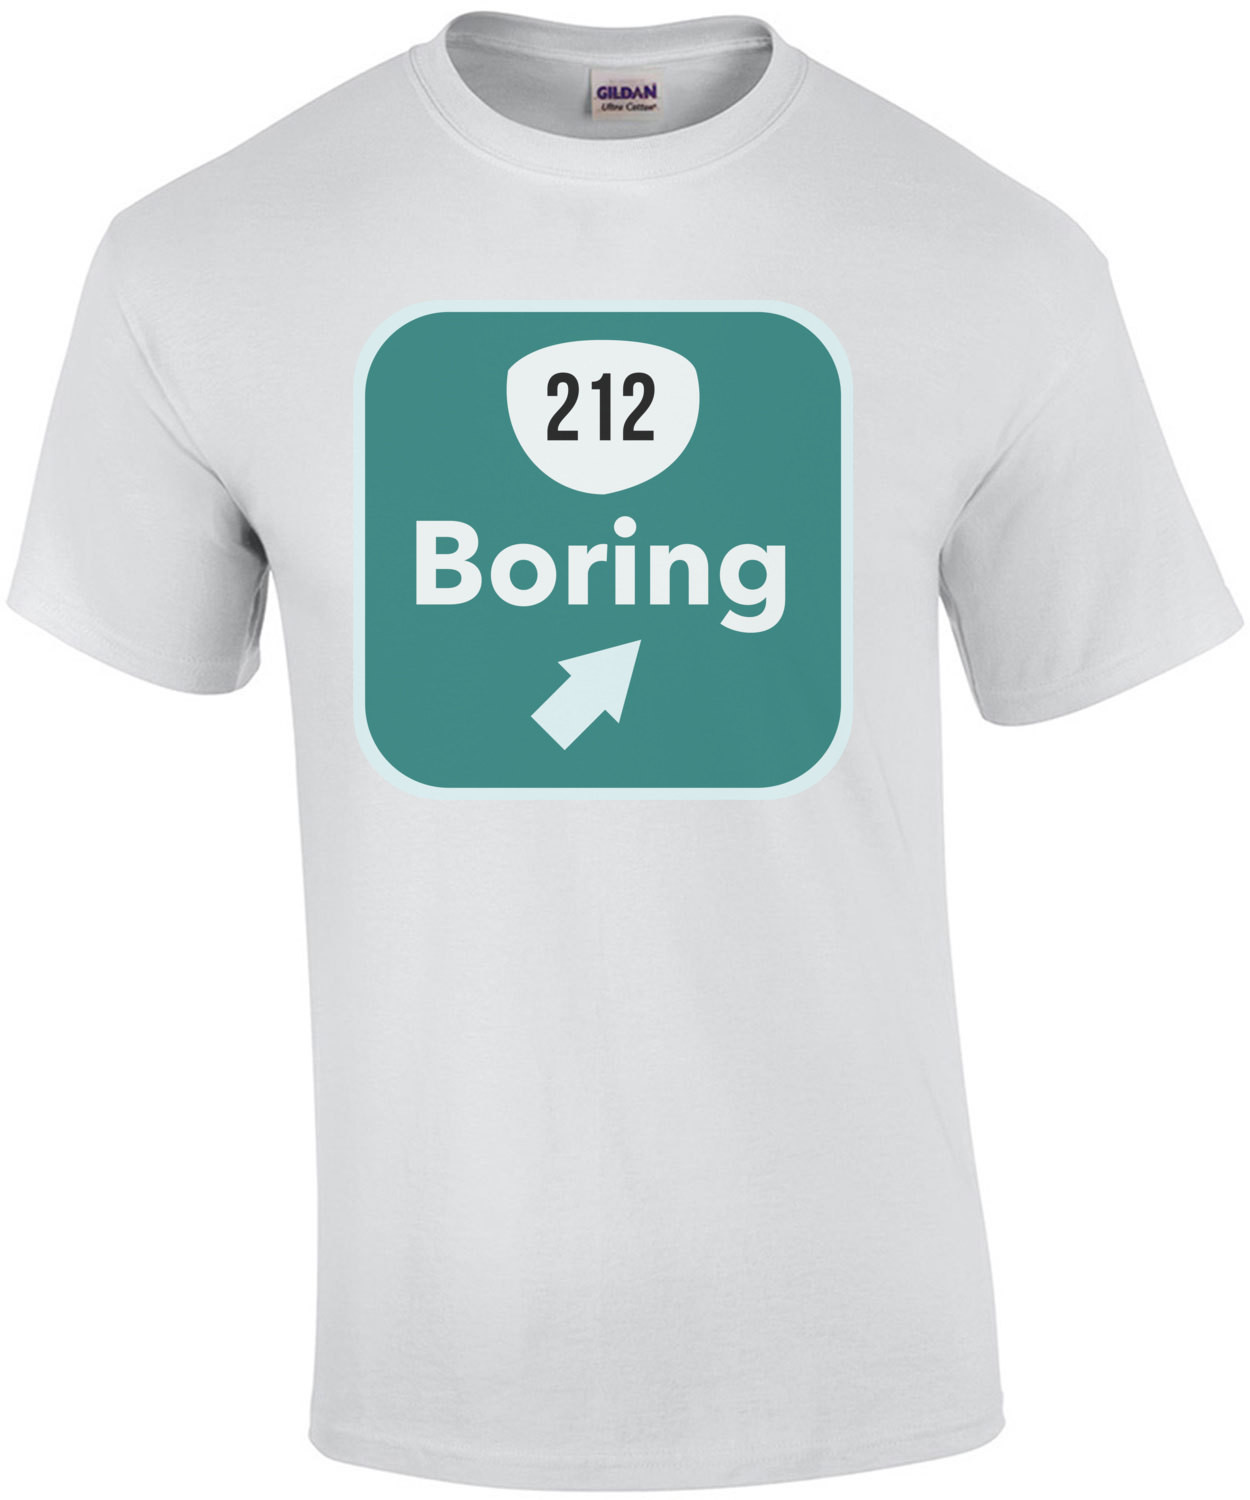 212 Boring - Oregon T-Shirt